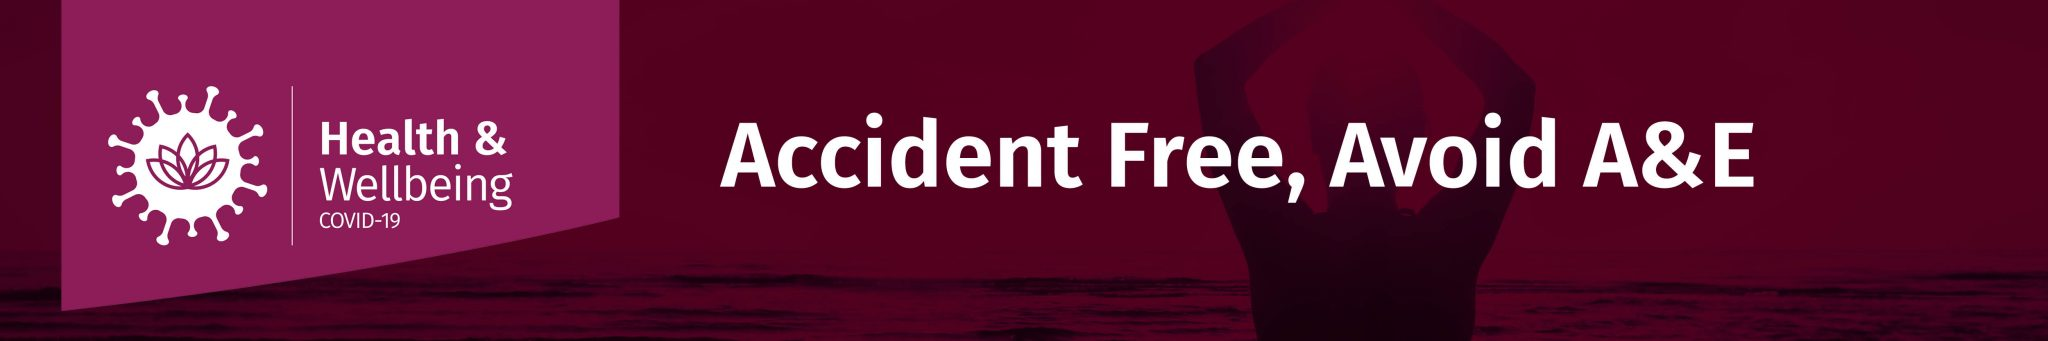 Accident Free, Avoid A & E